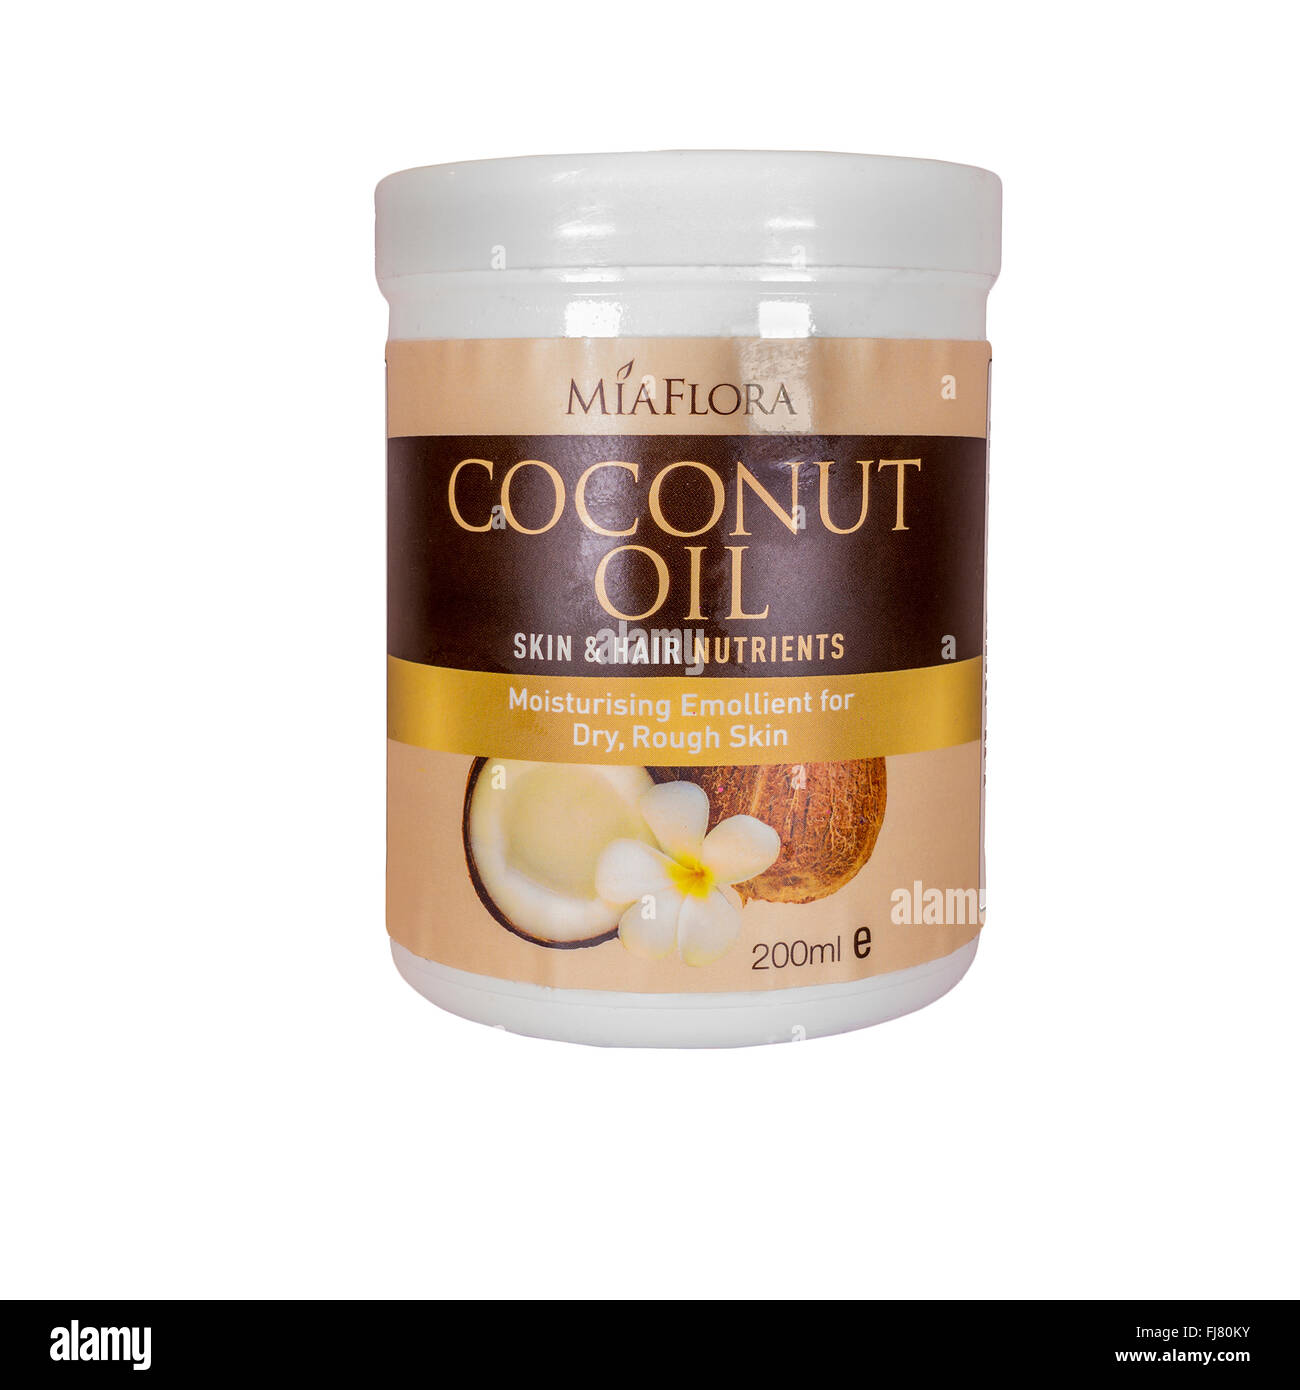 Coconut Oil MiaFlora Skin and Hair Nutrients - Stock Image